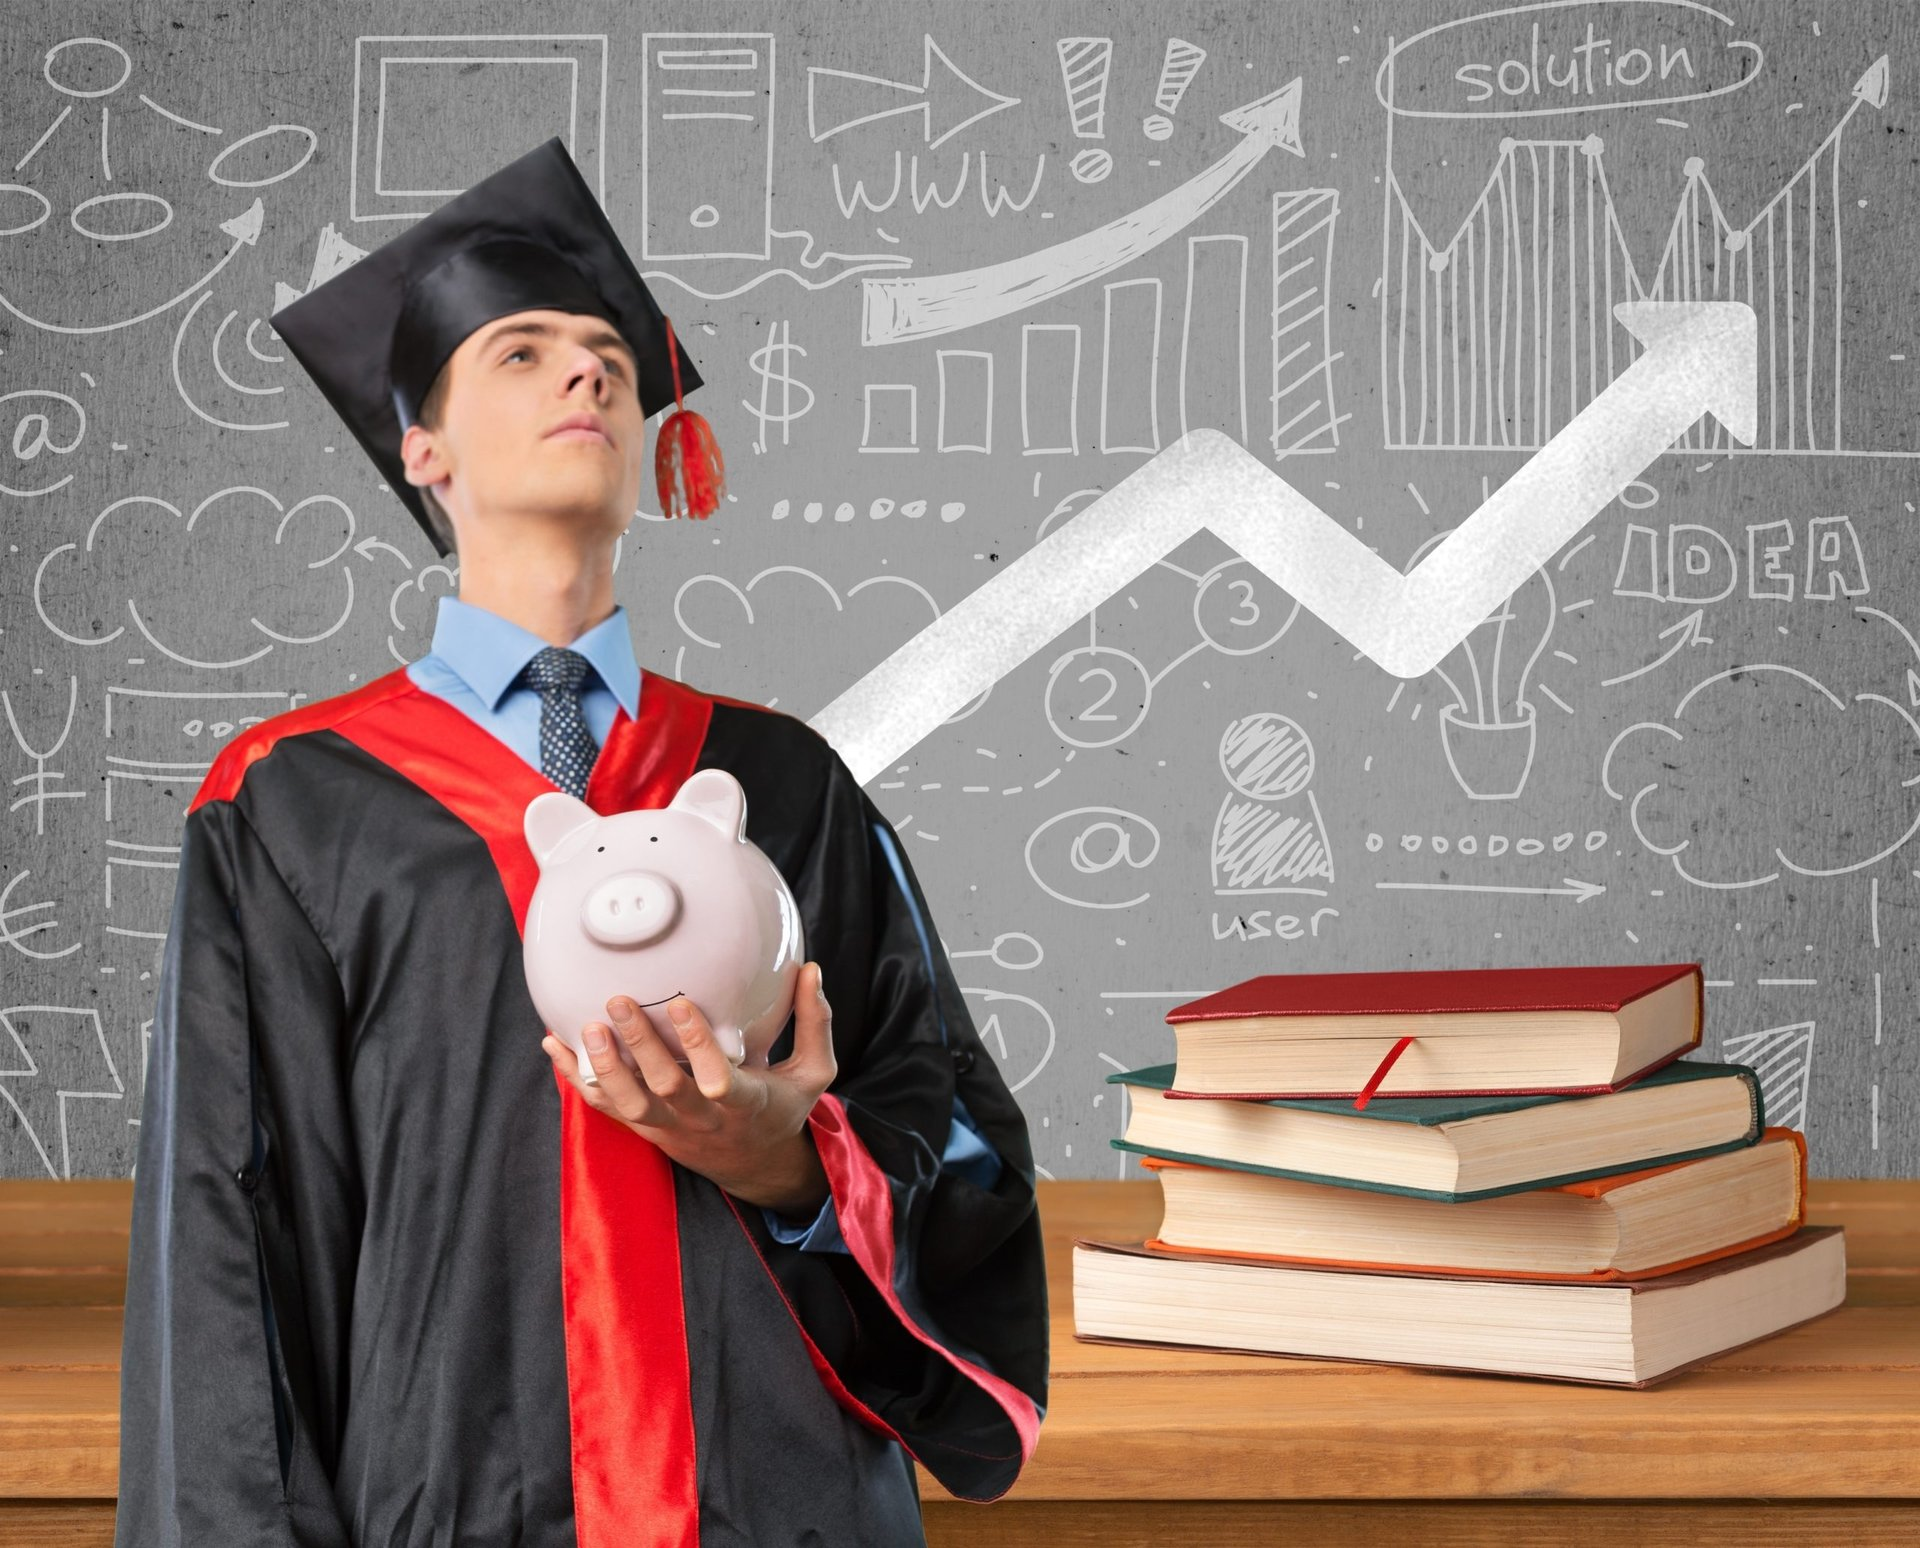 Graduate thinking about student loans and savings